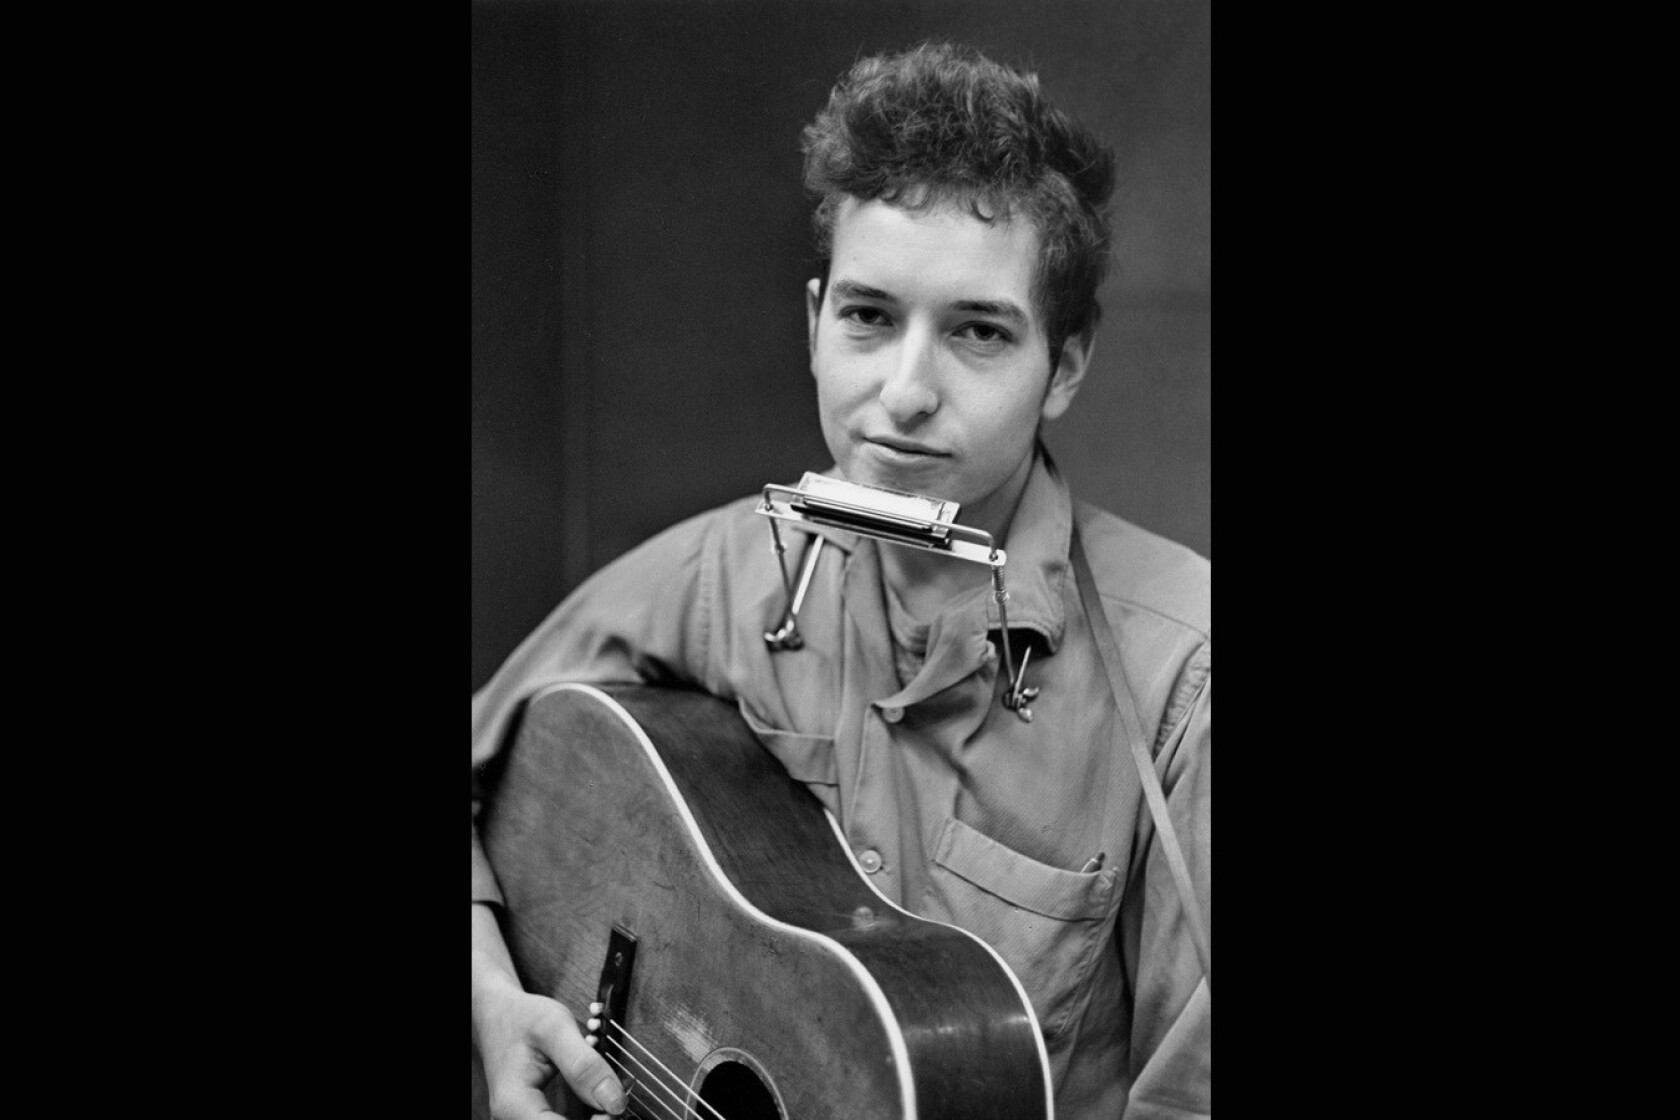 The six best Bob Dylan moments on film - Los Angeles Times